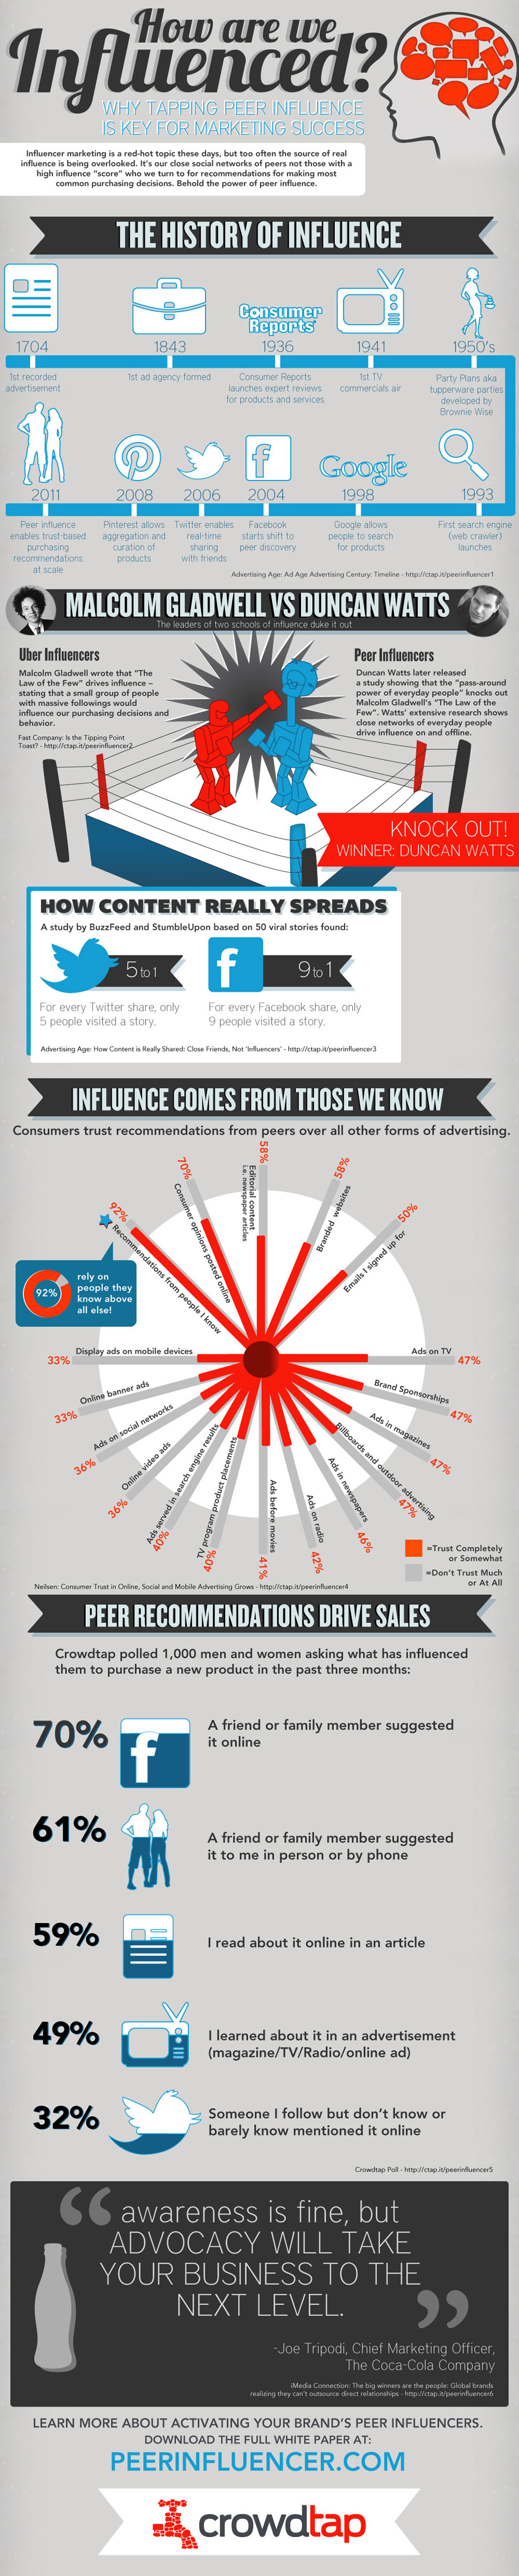 crowdtap influence marketing infographic jonno rodd The Real Online Influencers Are The People We Actually Know...